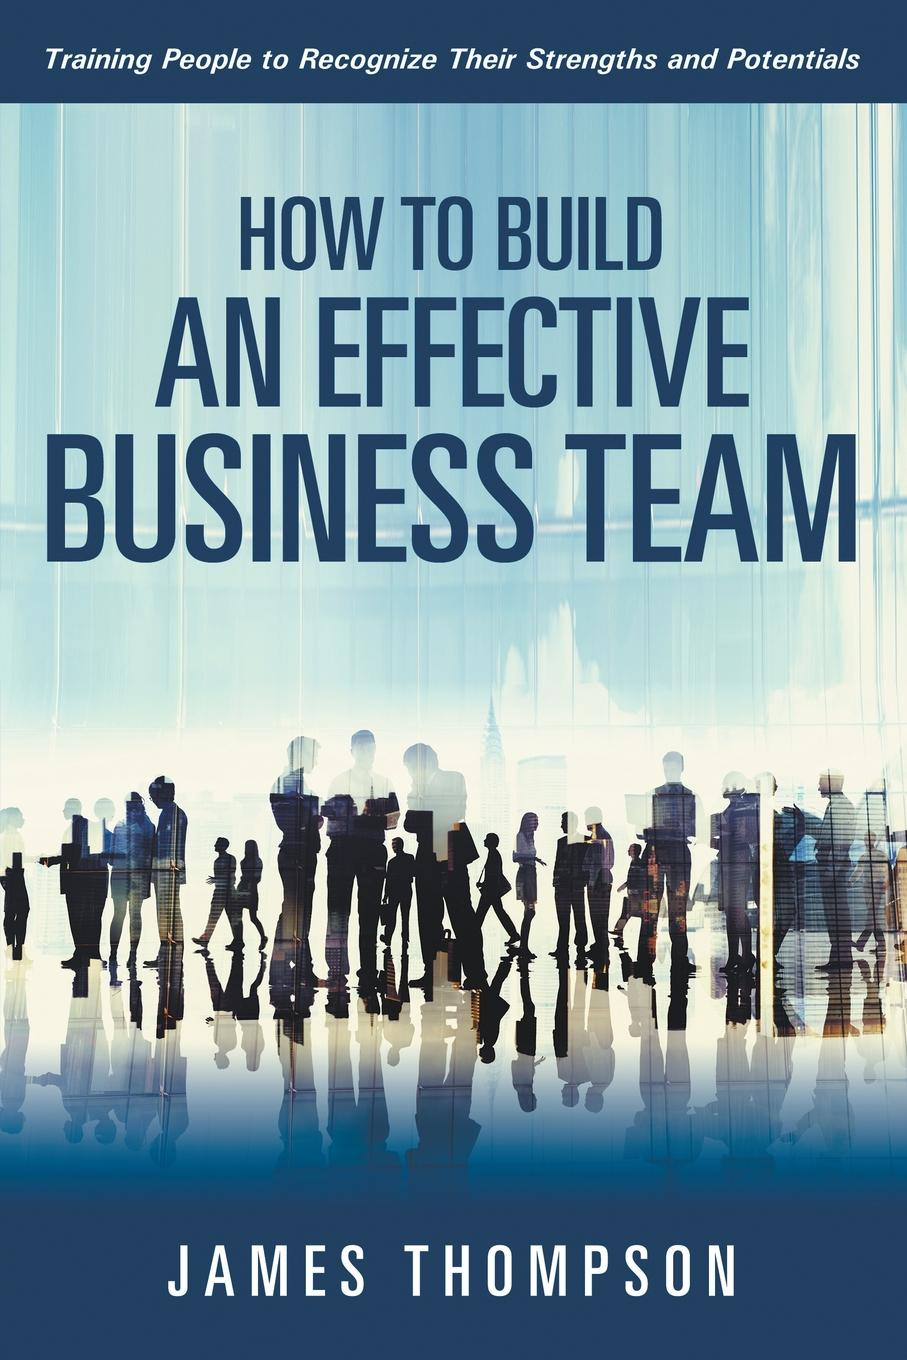 James Thompson How to Build an Effective Business Team. Training People to Recognize Their Strengths and Potentials russell sarder building an innovative learning organization a framework to build a smarter workforce adapt to change and drive growth